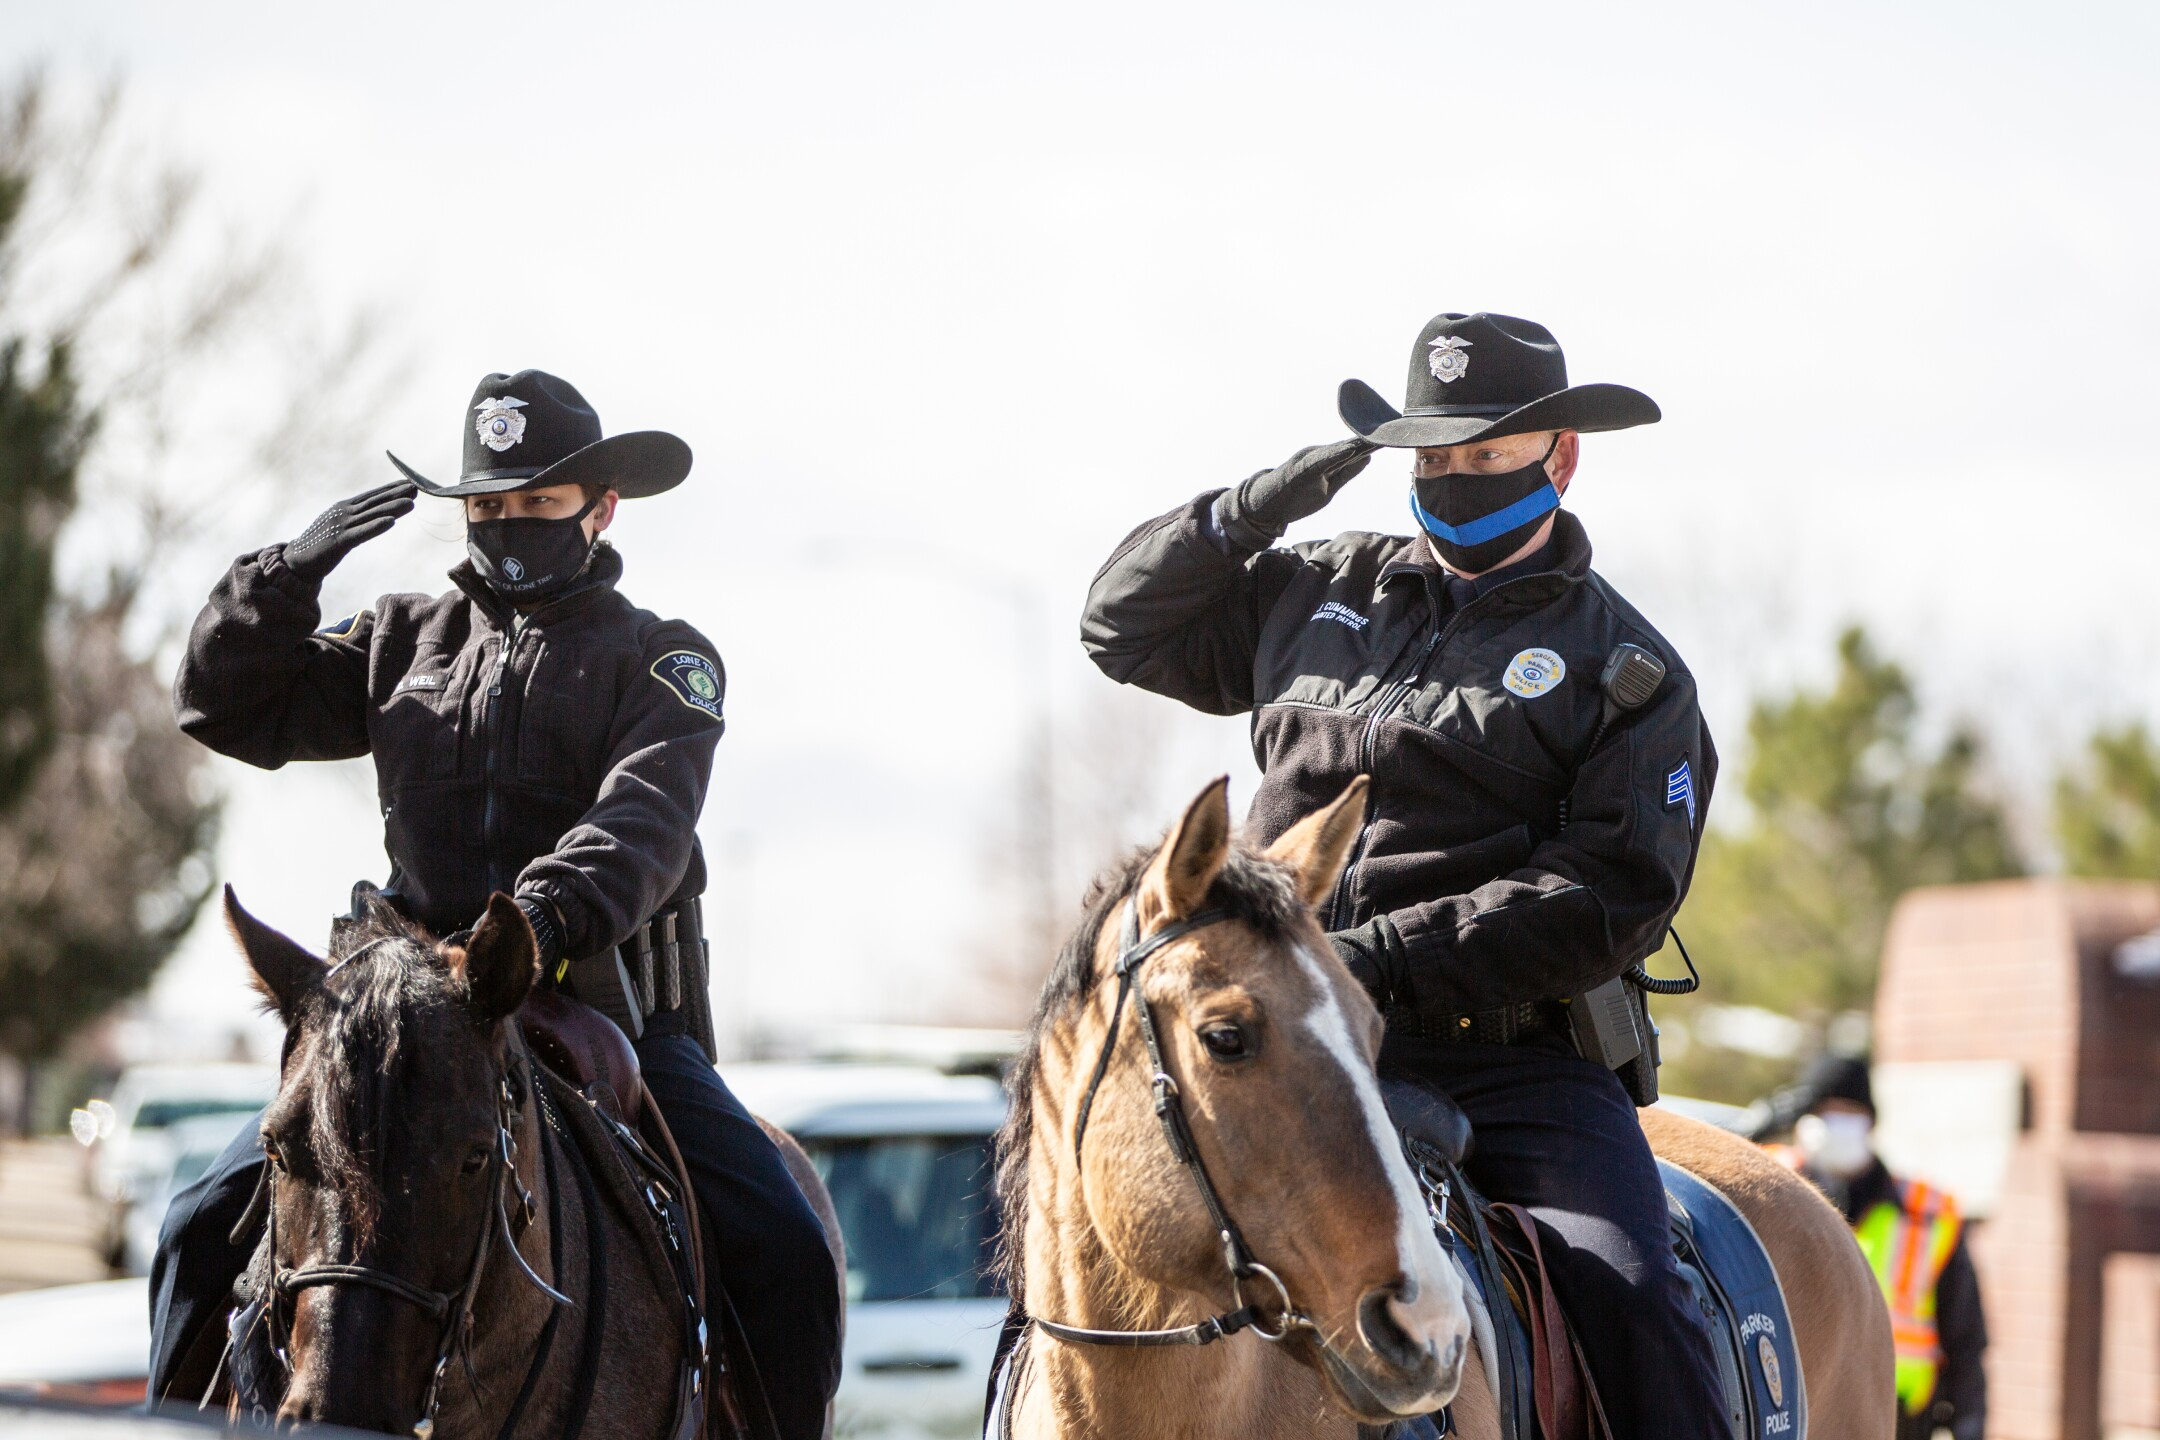 officer eric talley procession_sarah moore_23.jpg